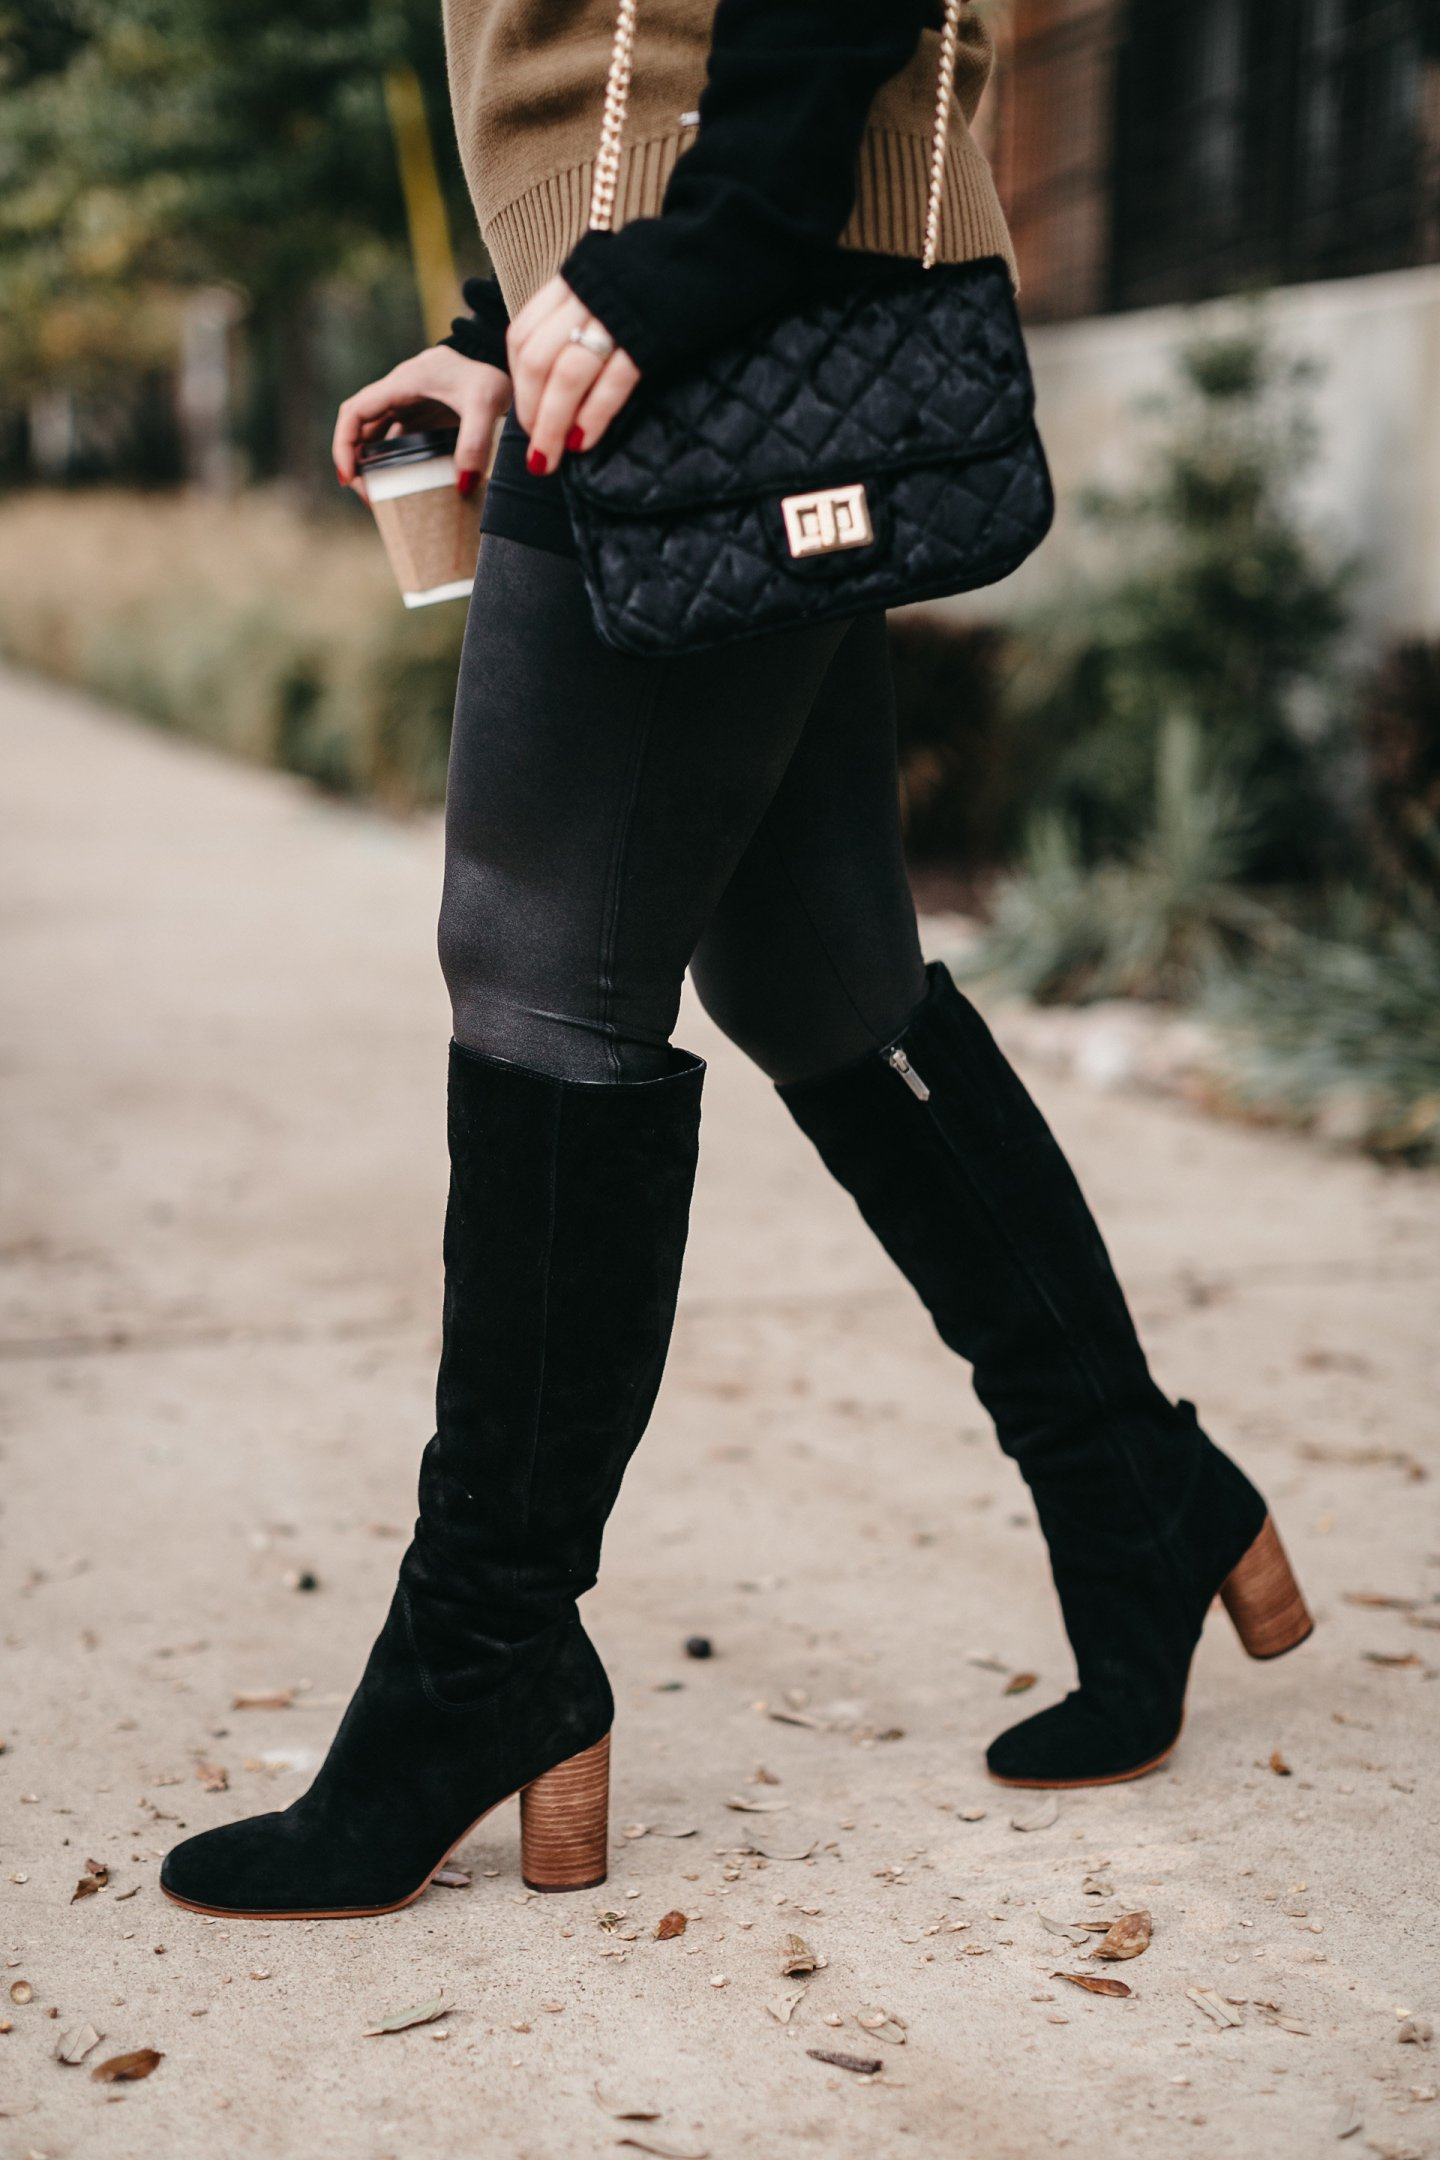 knee-high black boots you need for fall